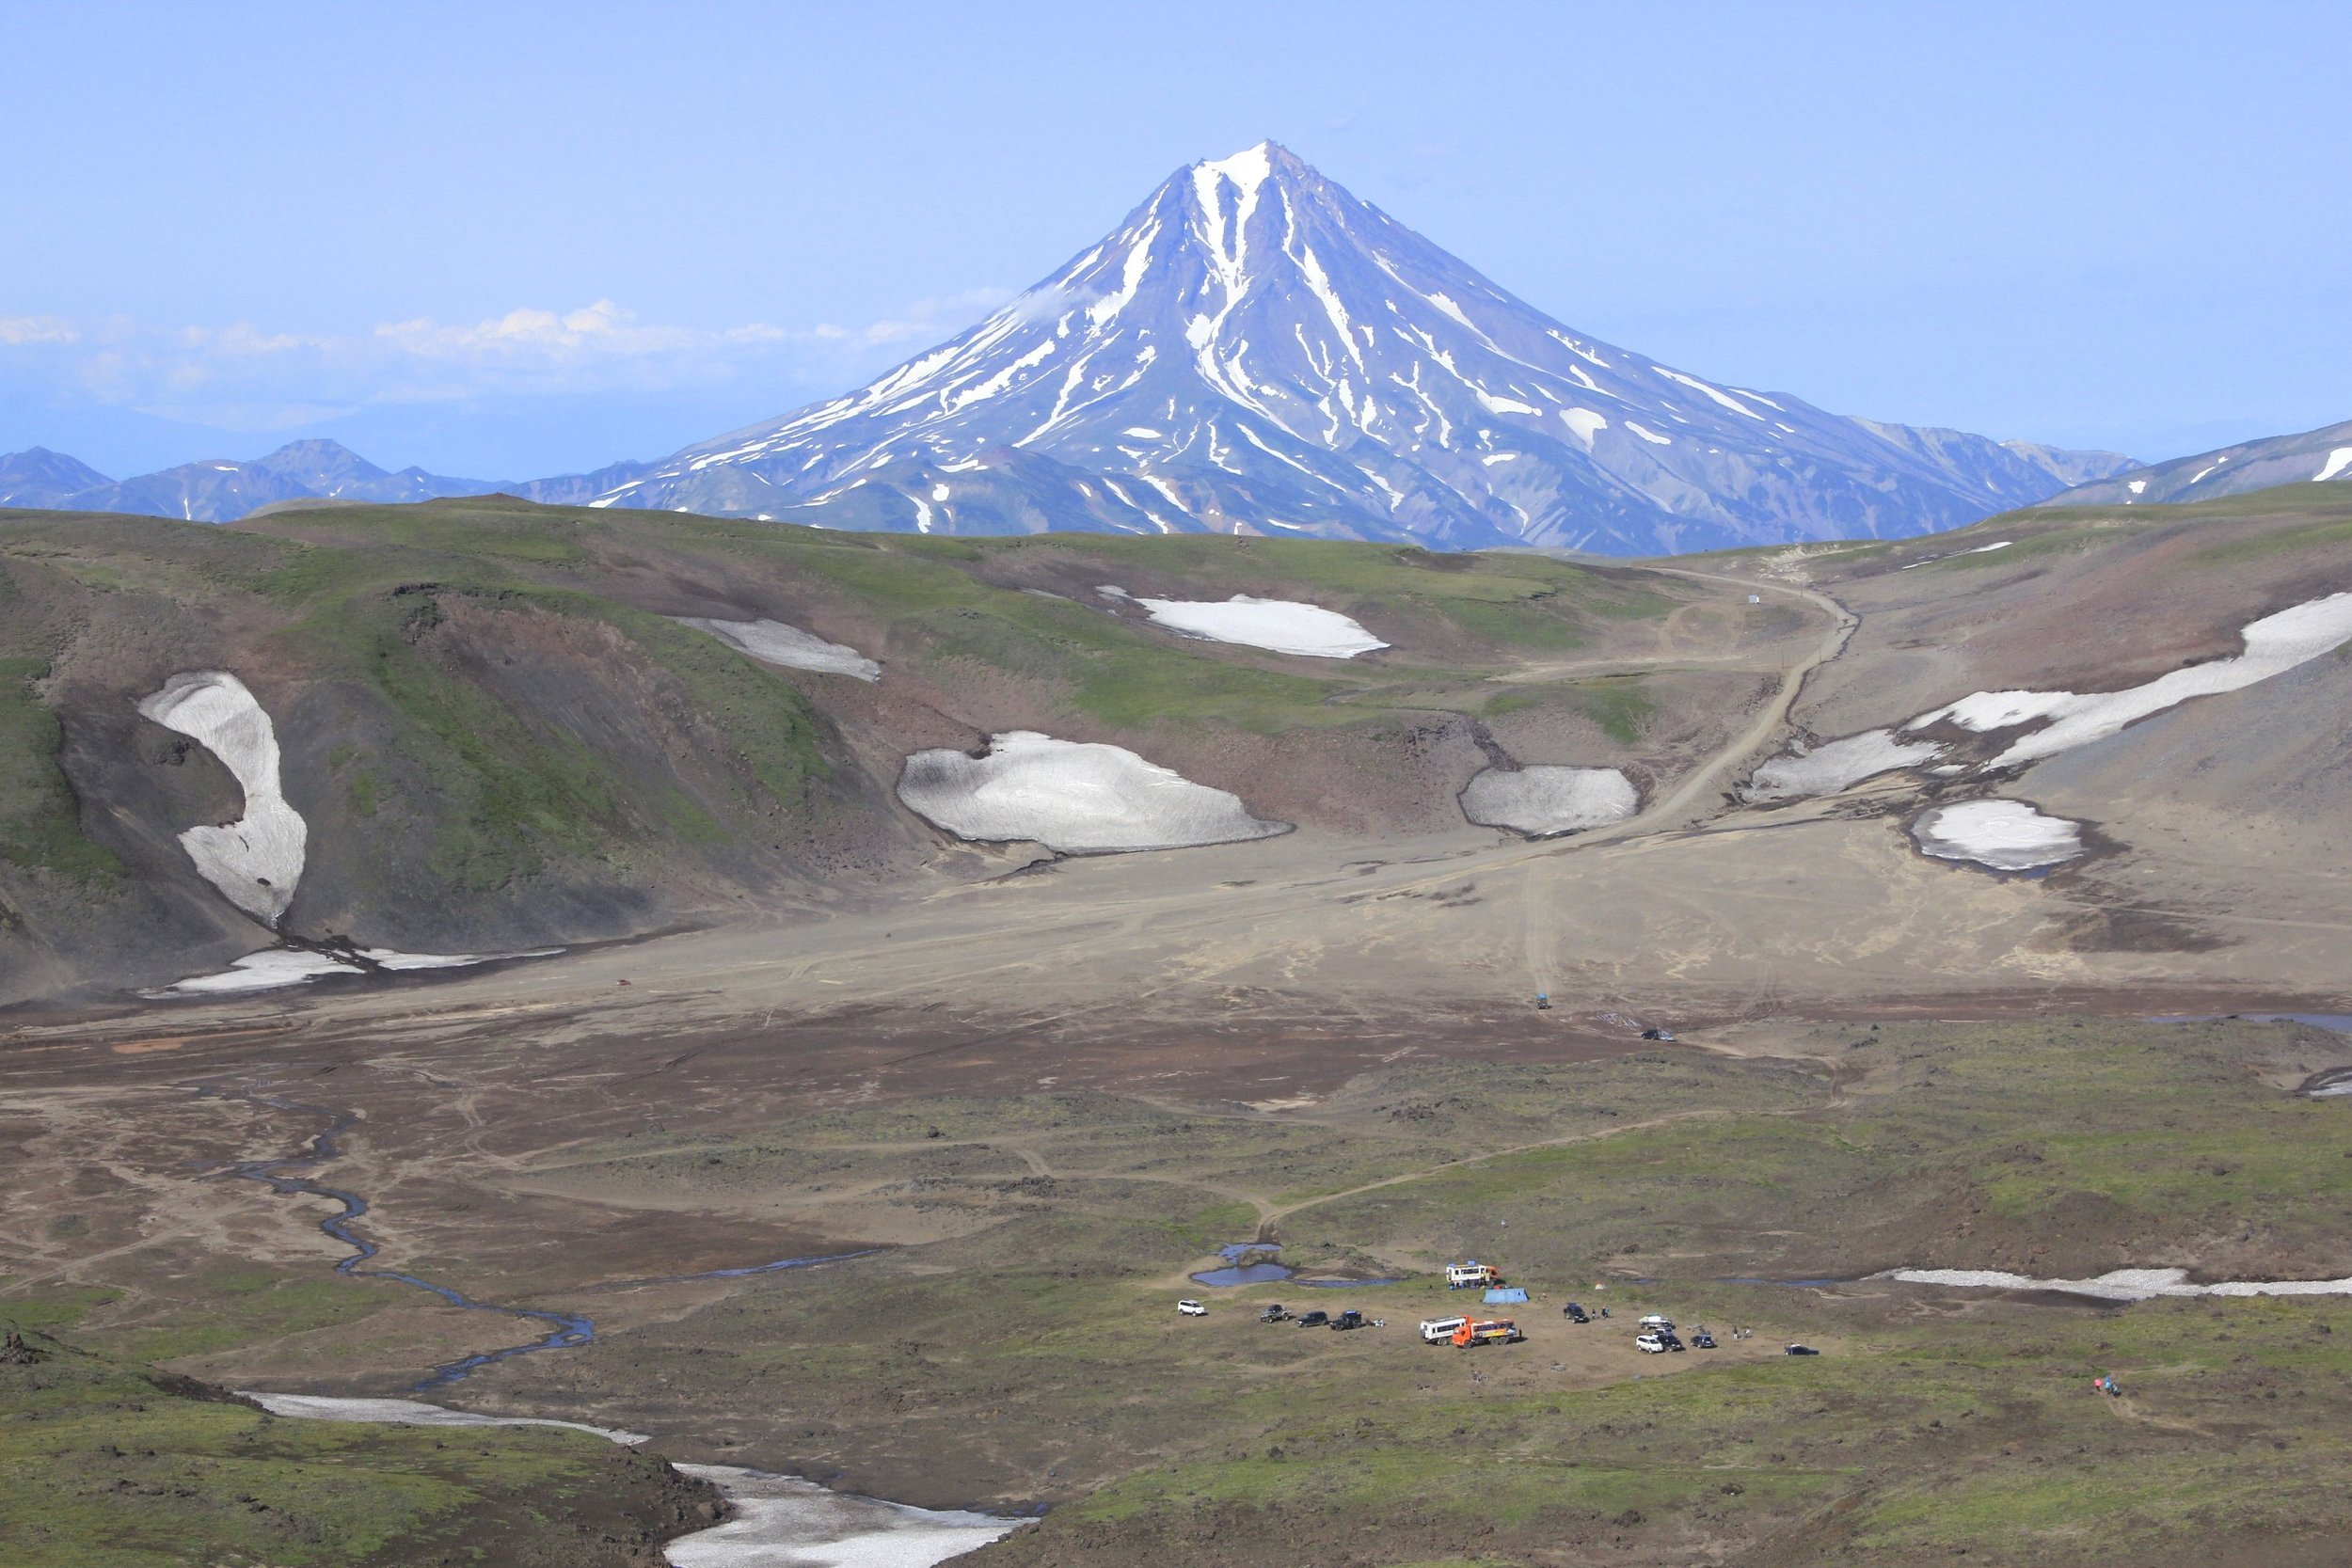 The dormant Vilyuchinsky Volcano. At the base of the Gorely Volcano you can see the parking for the day-trippers from PK.